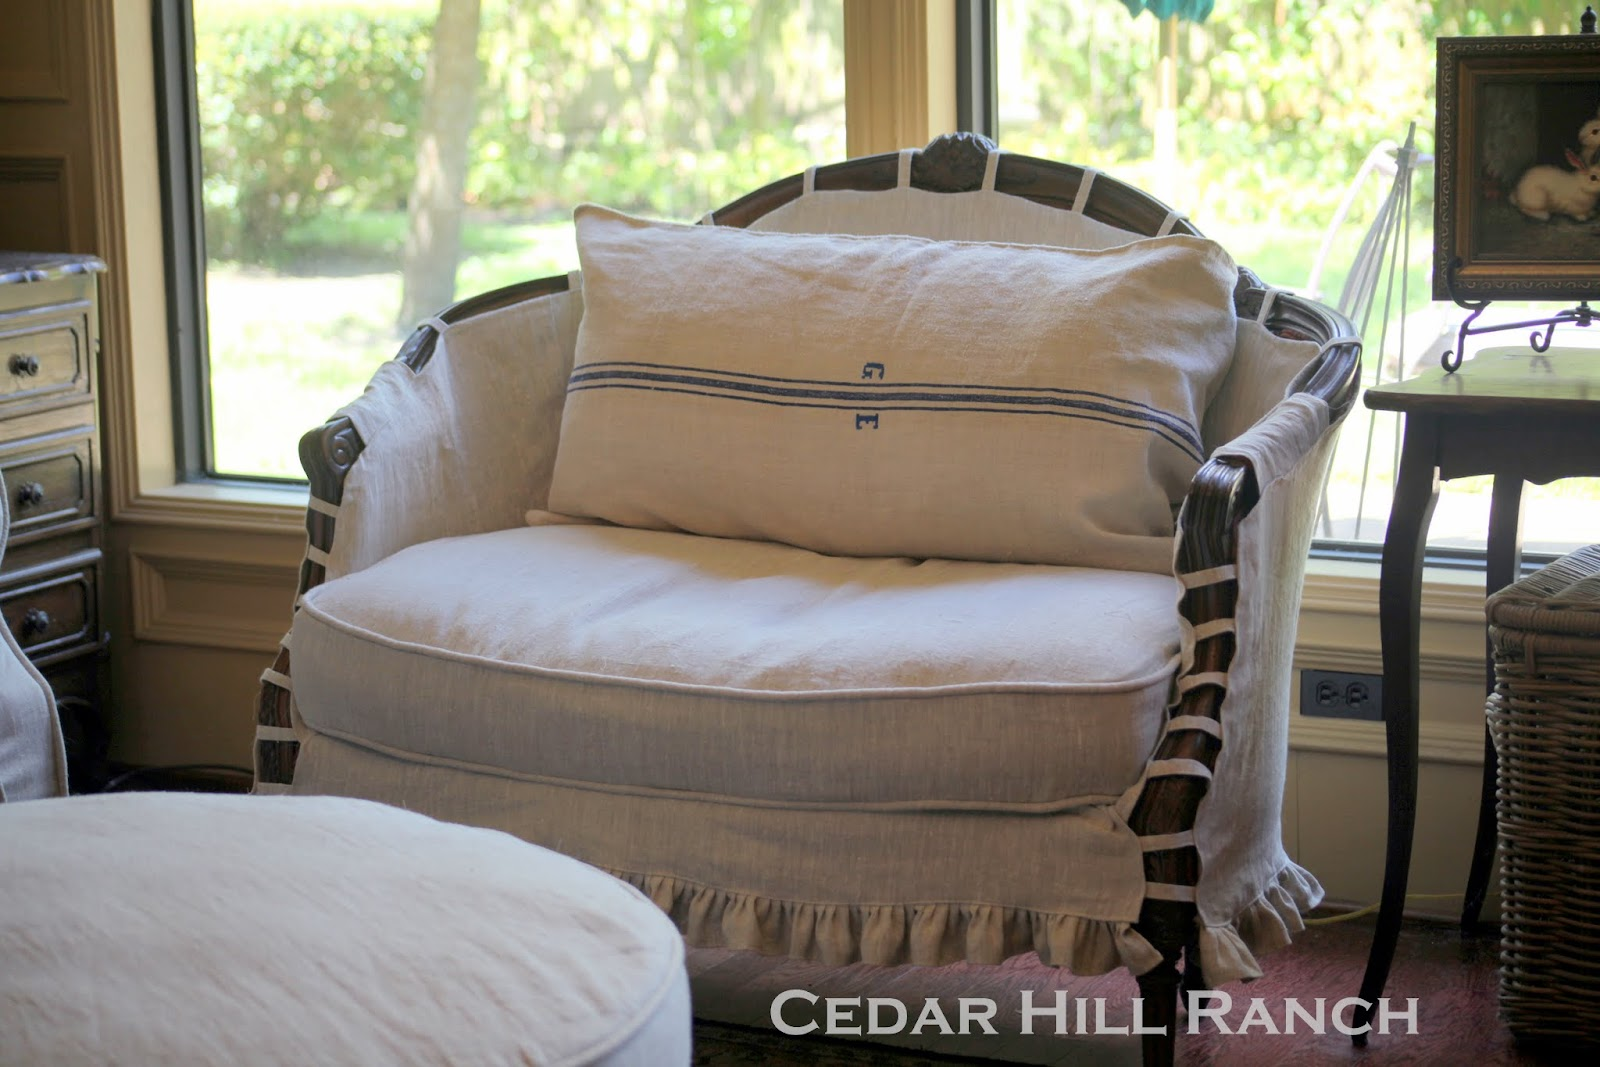 French Linen Slipcovers - Cedar Hill Farmhouse